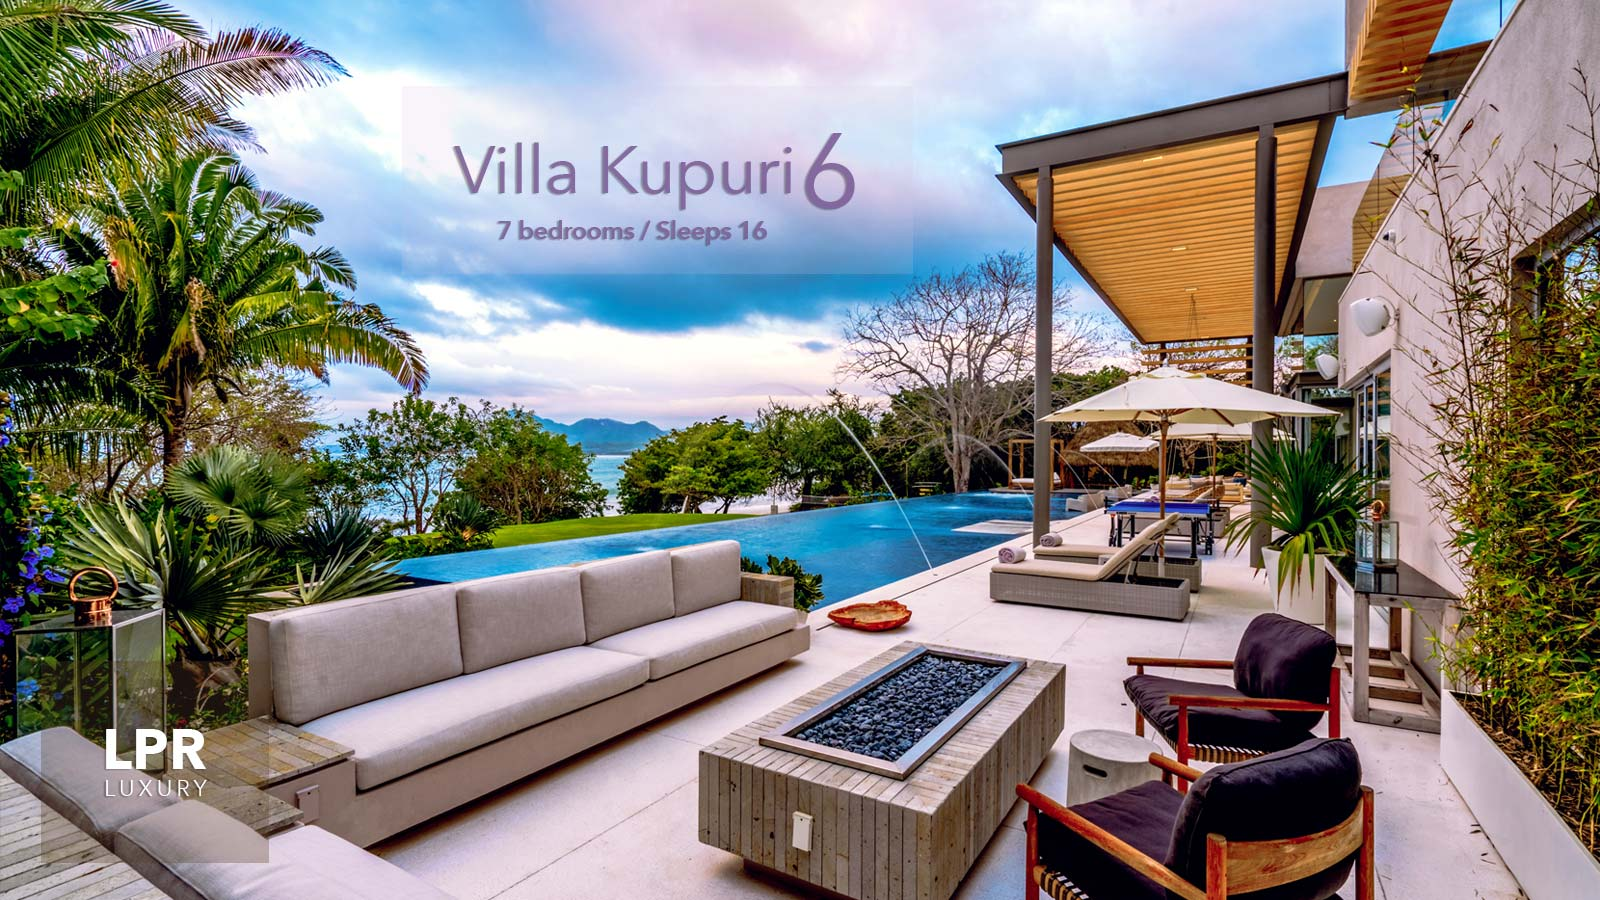 Villa Kupuri 6 - Ultra Luxury beachfront vacation rental villa at the Punta Mita Resort, Four Seasons / St. Regis - Punta Mita, Mexico